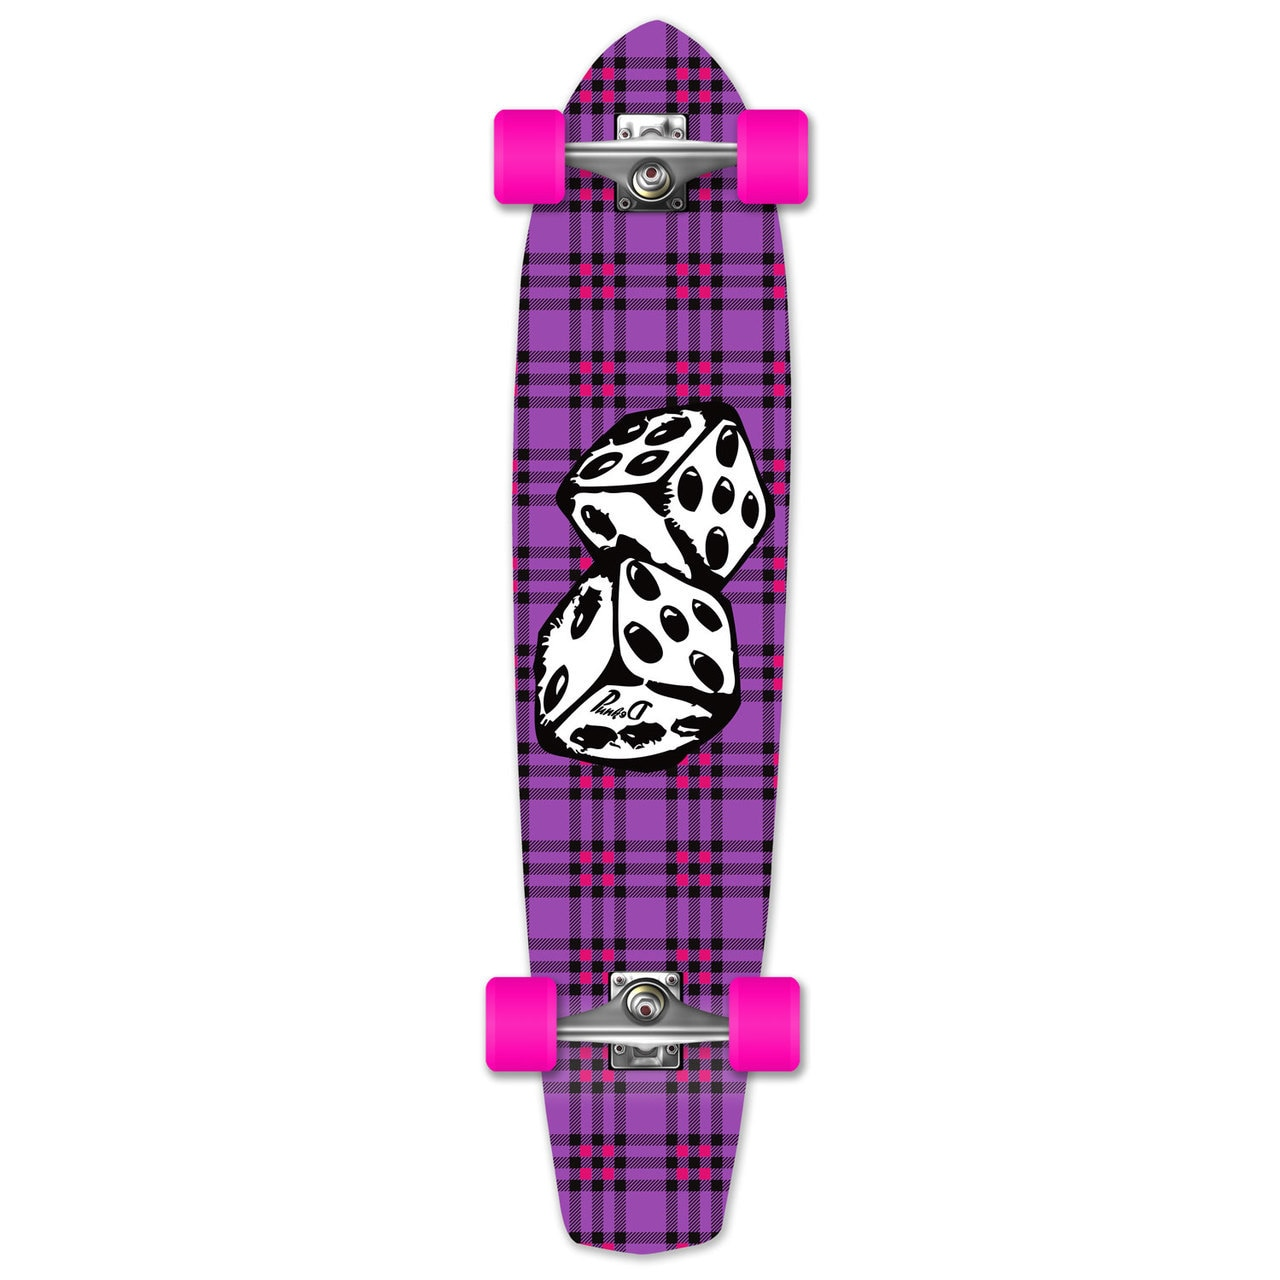 Yocaher Slimkick Longboard Complete Dice by